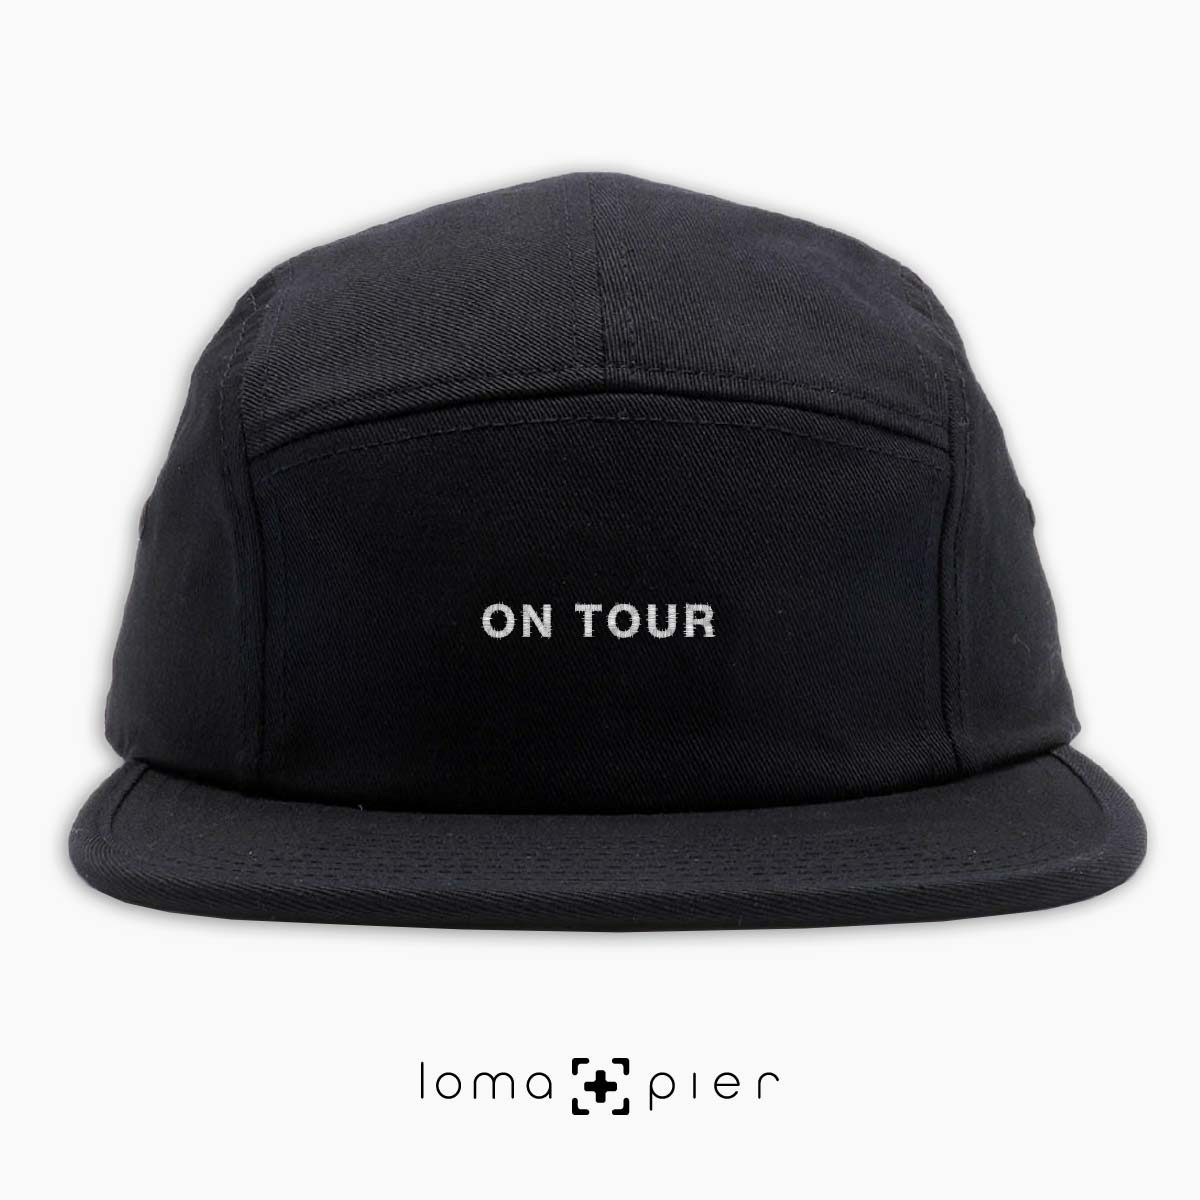 ON TOUR embroidered on a black cotton 5-panel hat by loma+pier hat store